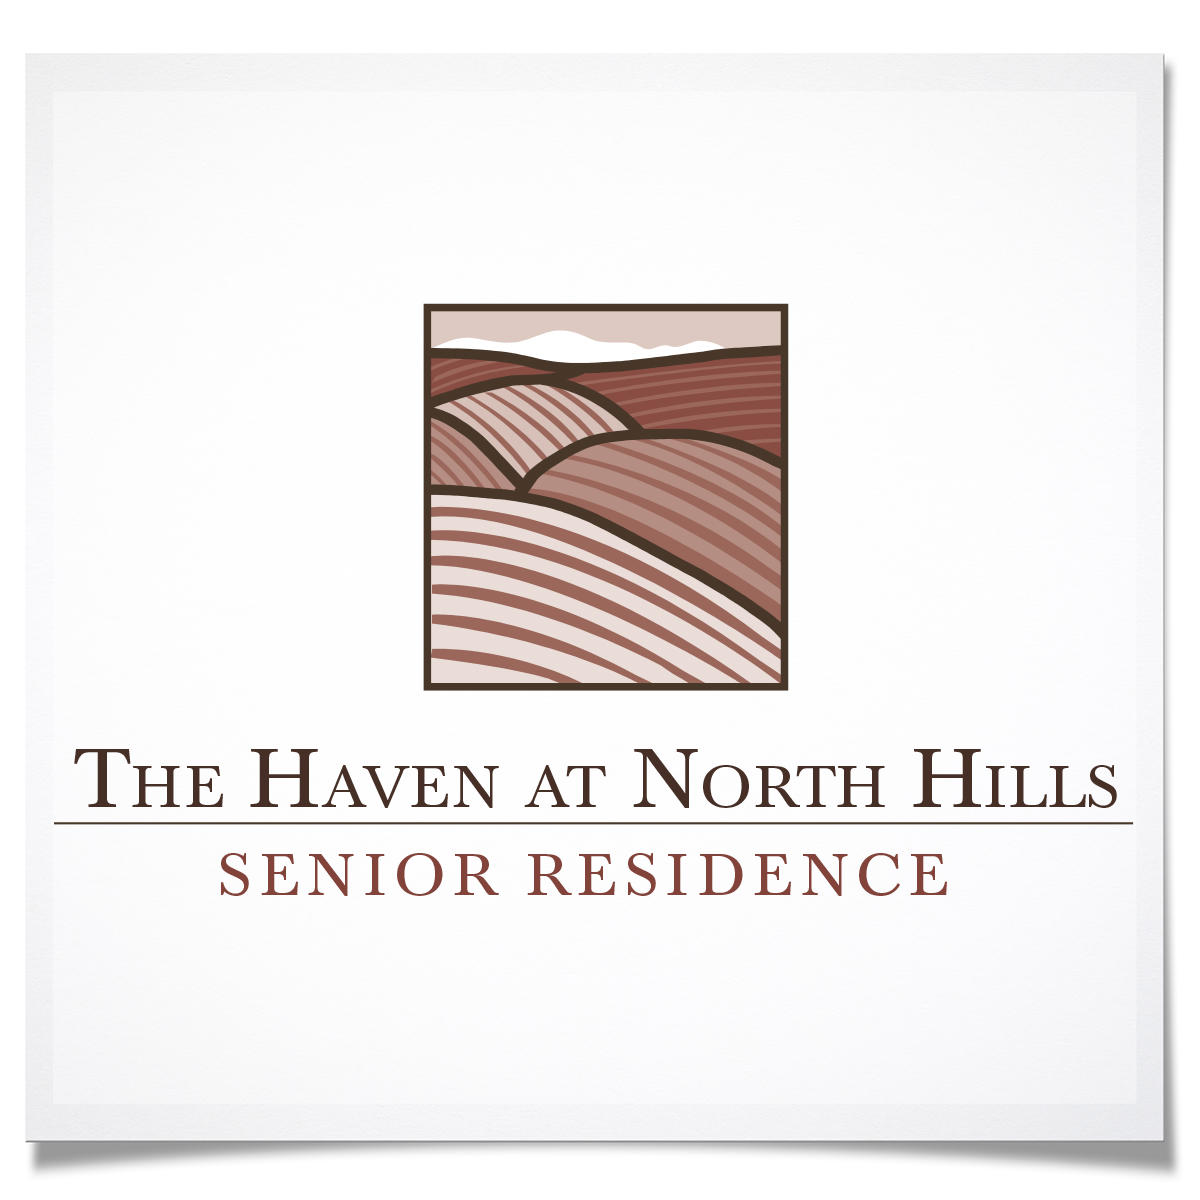 The Haven at North Hills Senior Residence